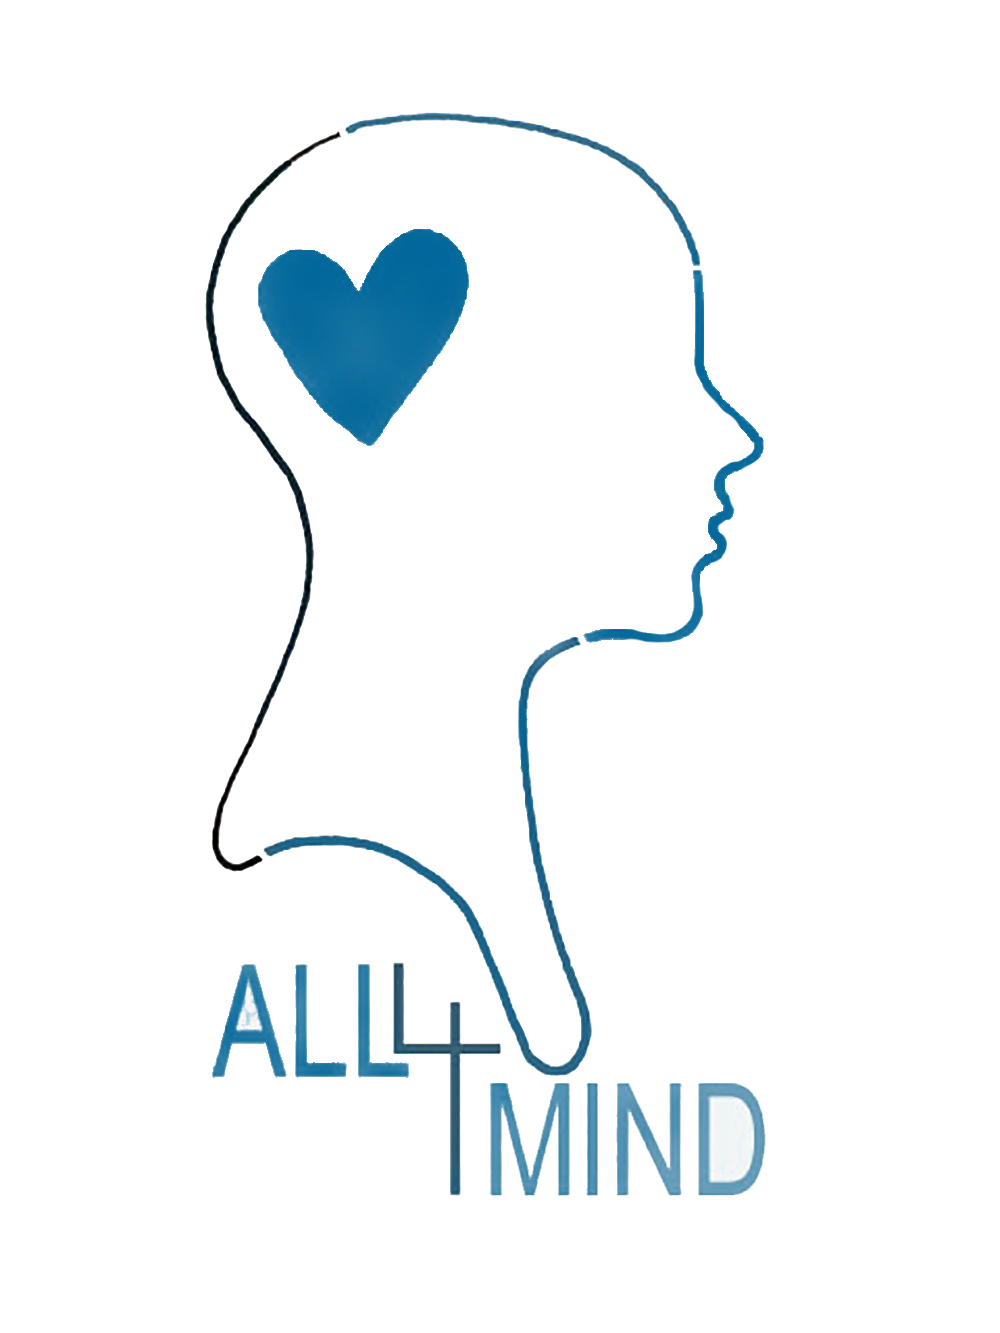 het logo van de website all4mind